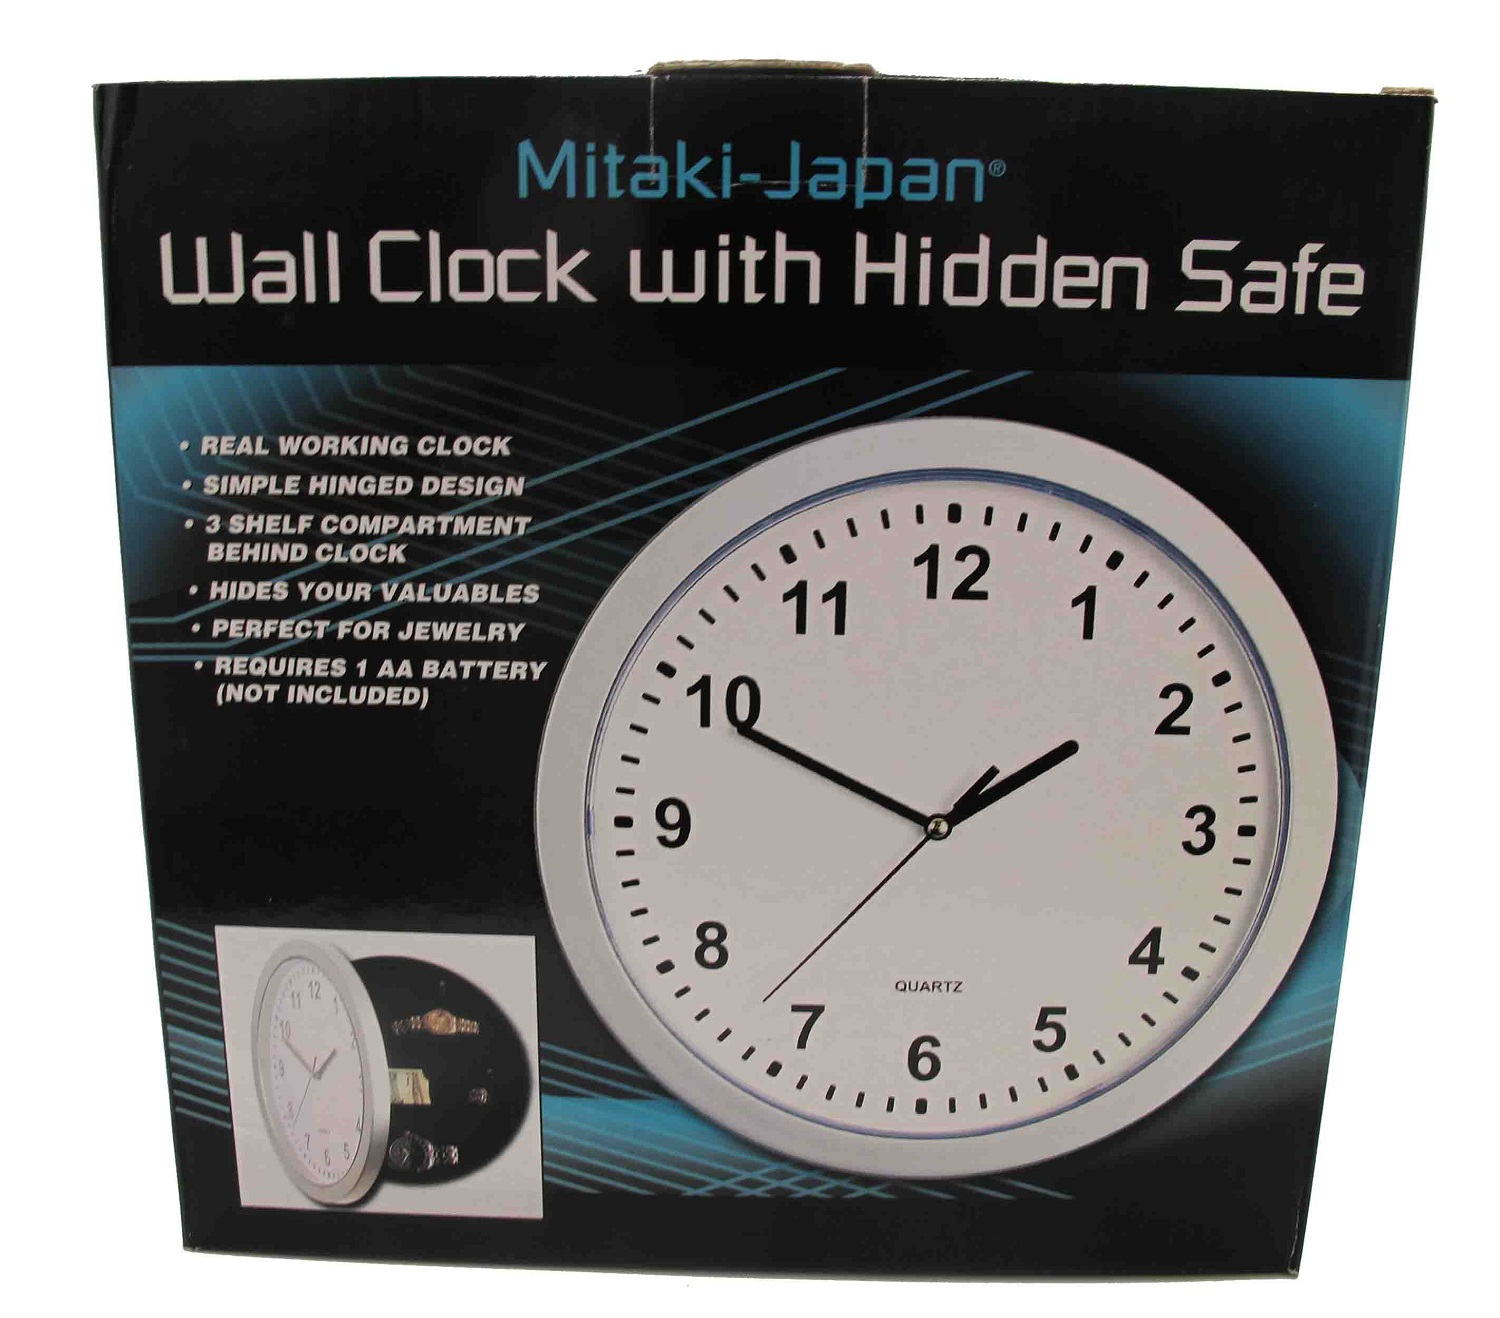 Wall clock with hidden safe wholesale for sale fall clearance amipublicfo Images